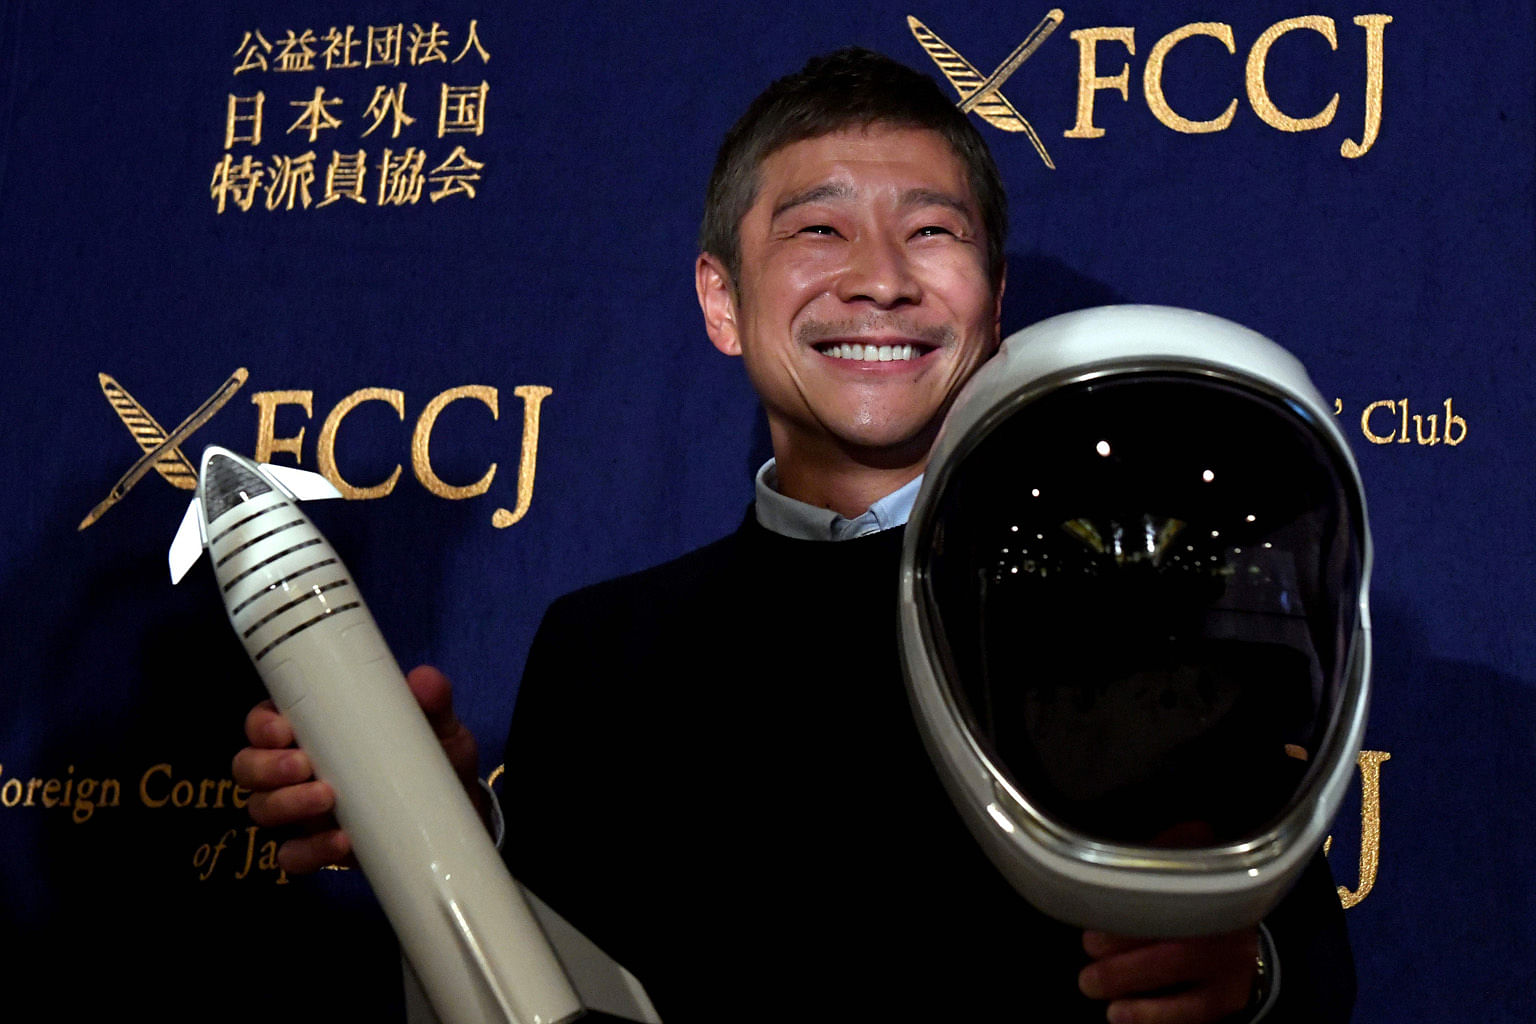 Mr Yusaku Maezawa with a miniature rocket and space helmet prior to the start of a press conference at the Foreign Correspondents' Club of Japan in Tokyo last Tuesday.